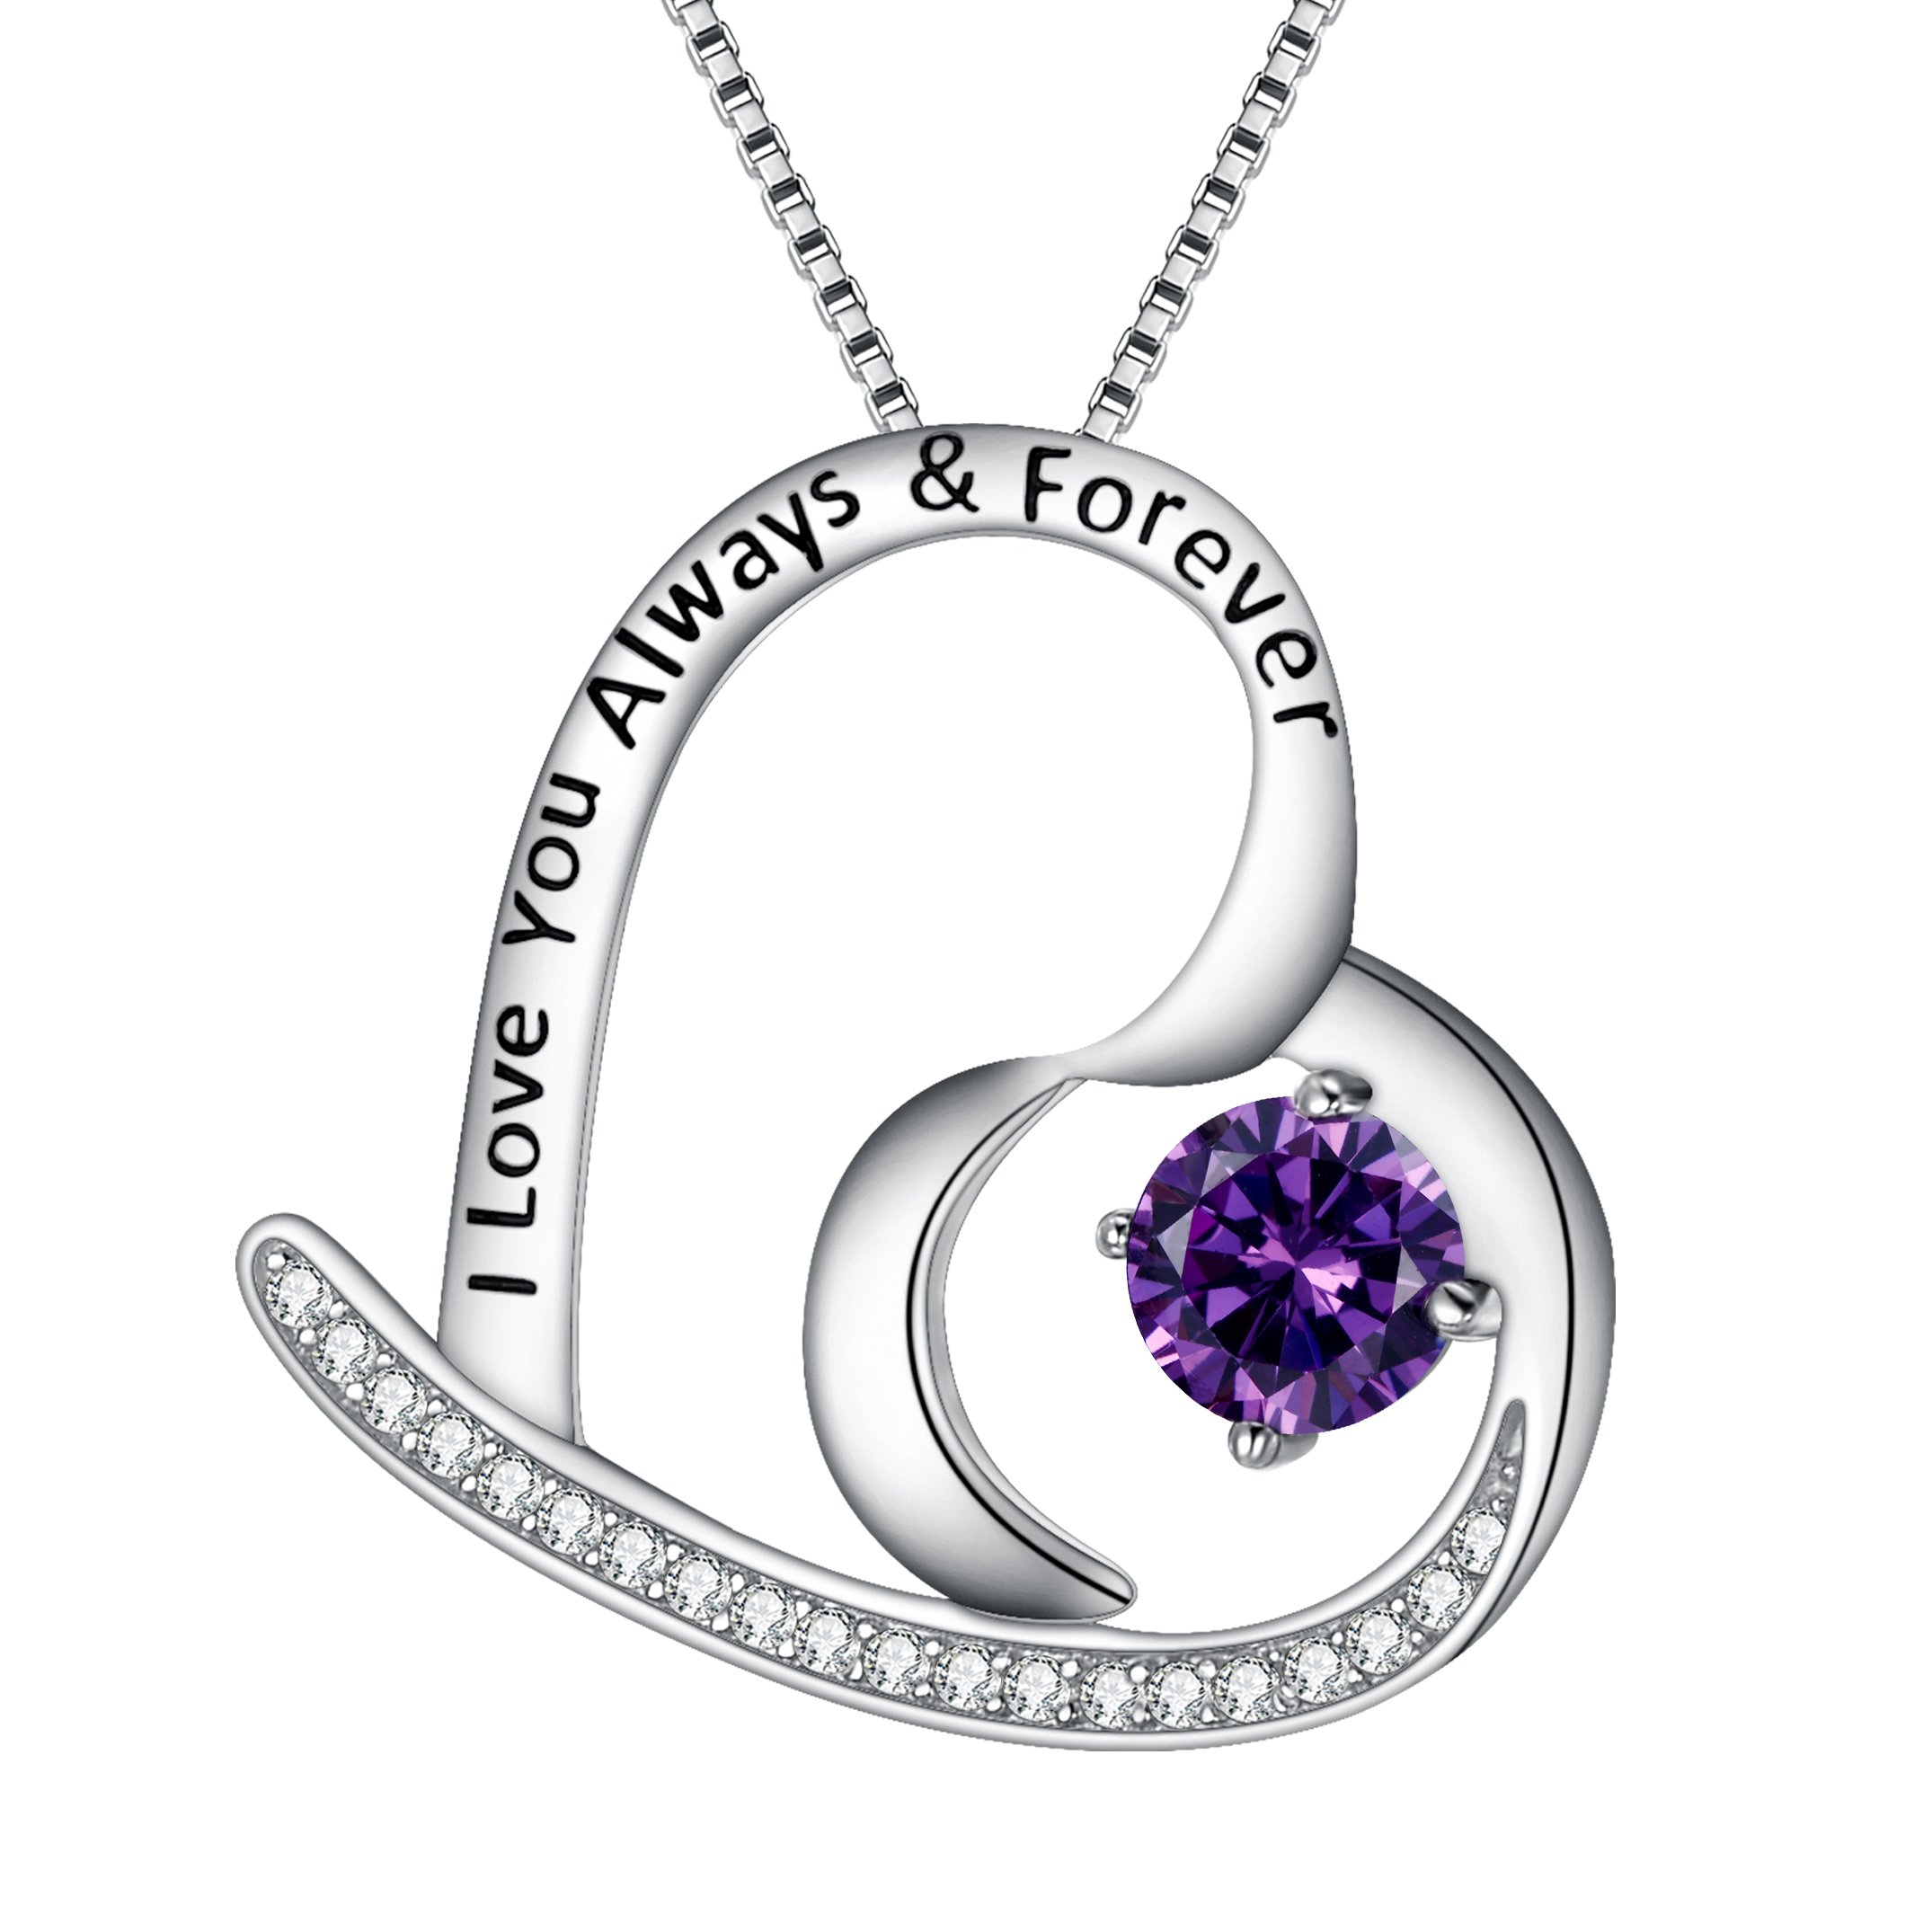 BriLove 925 Sterling Silver Heart Necklace for Women,''I Love You Always & Forever'' Engraved CZ Pendant Necklace Amethyst Color Feburary Birthstone